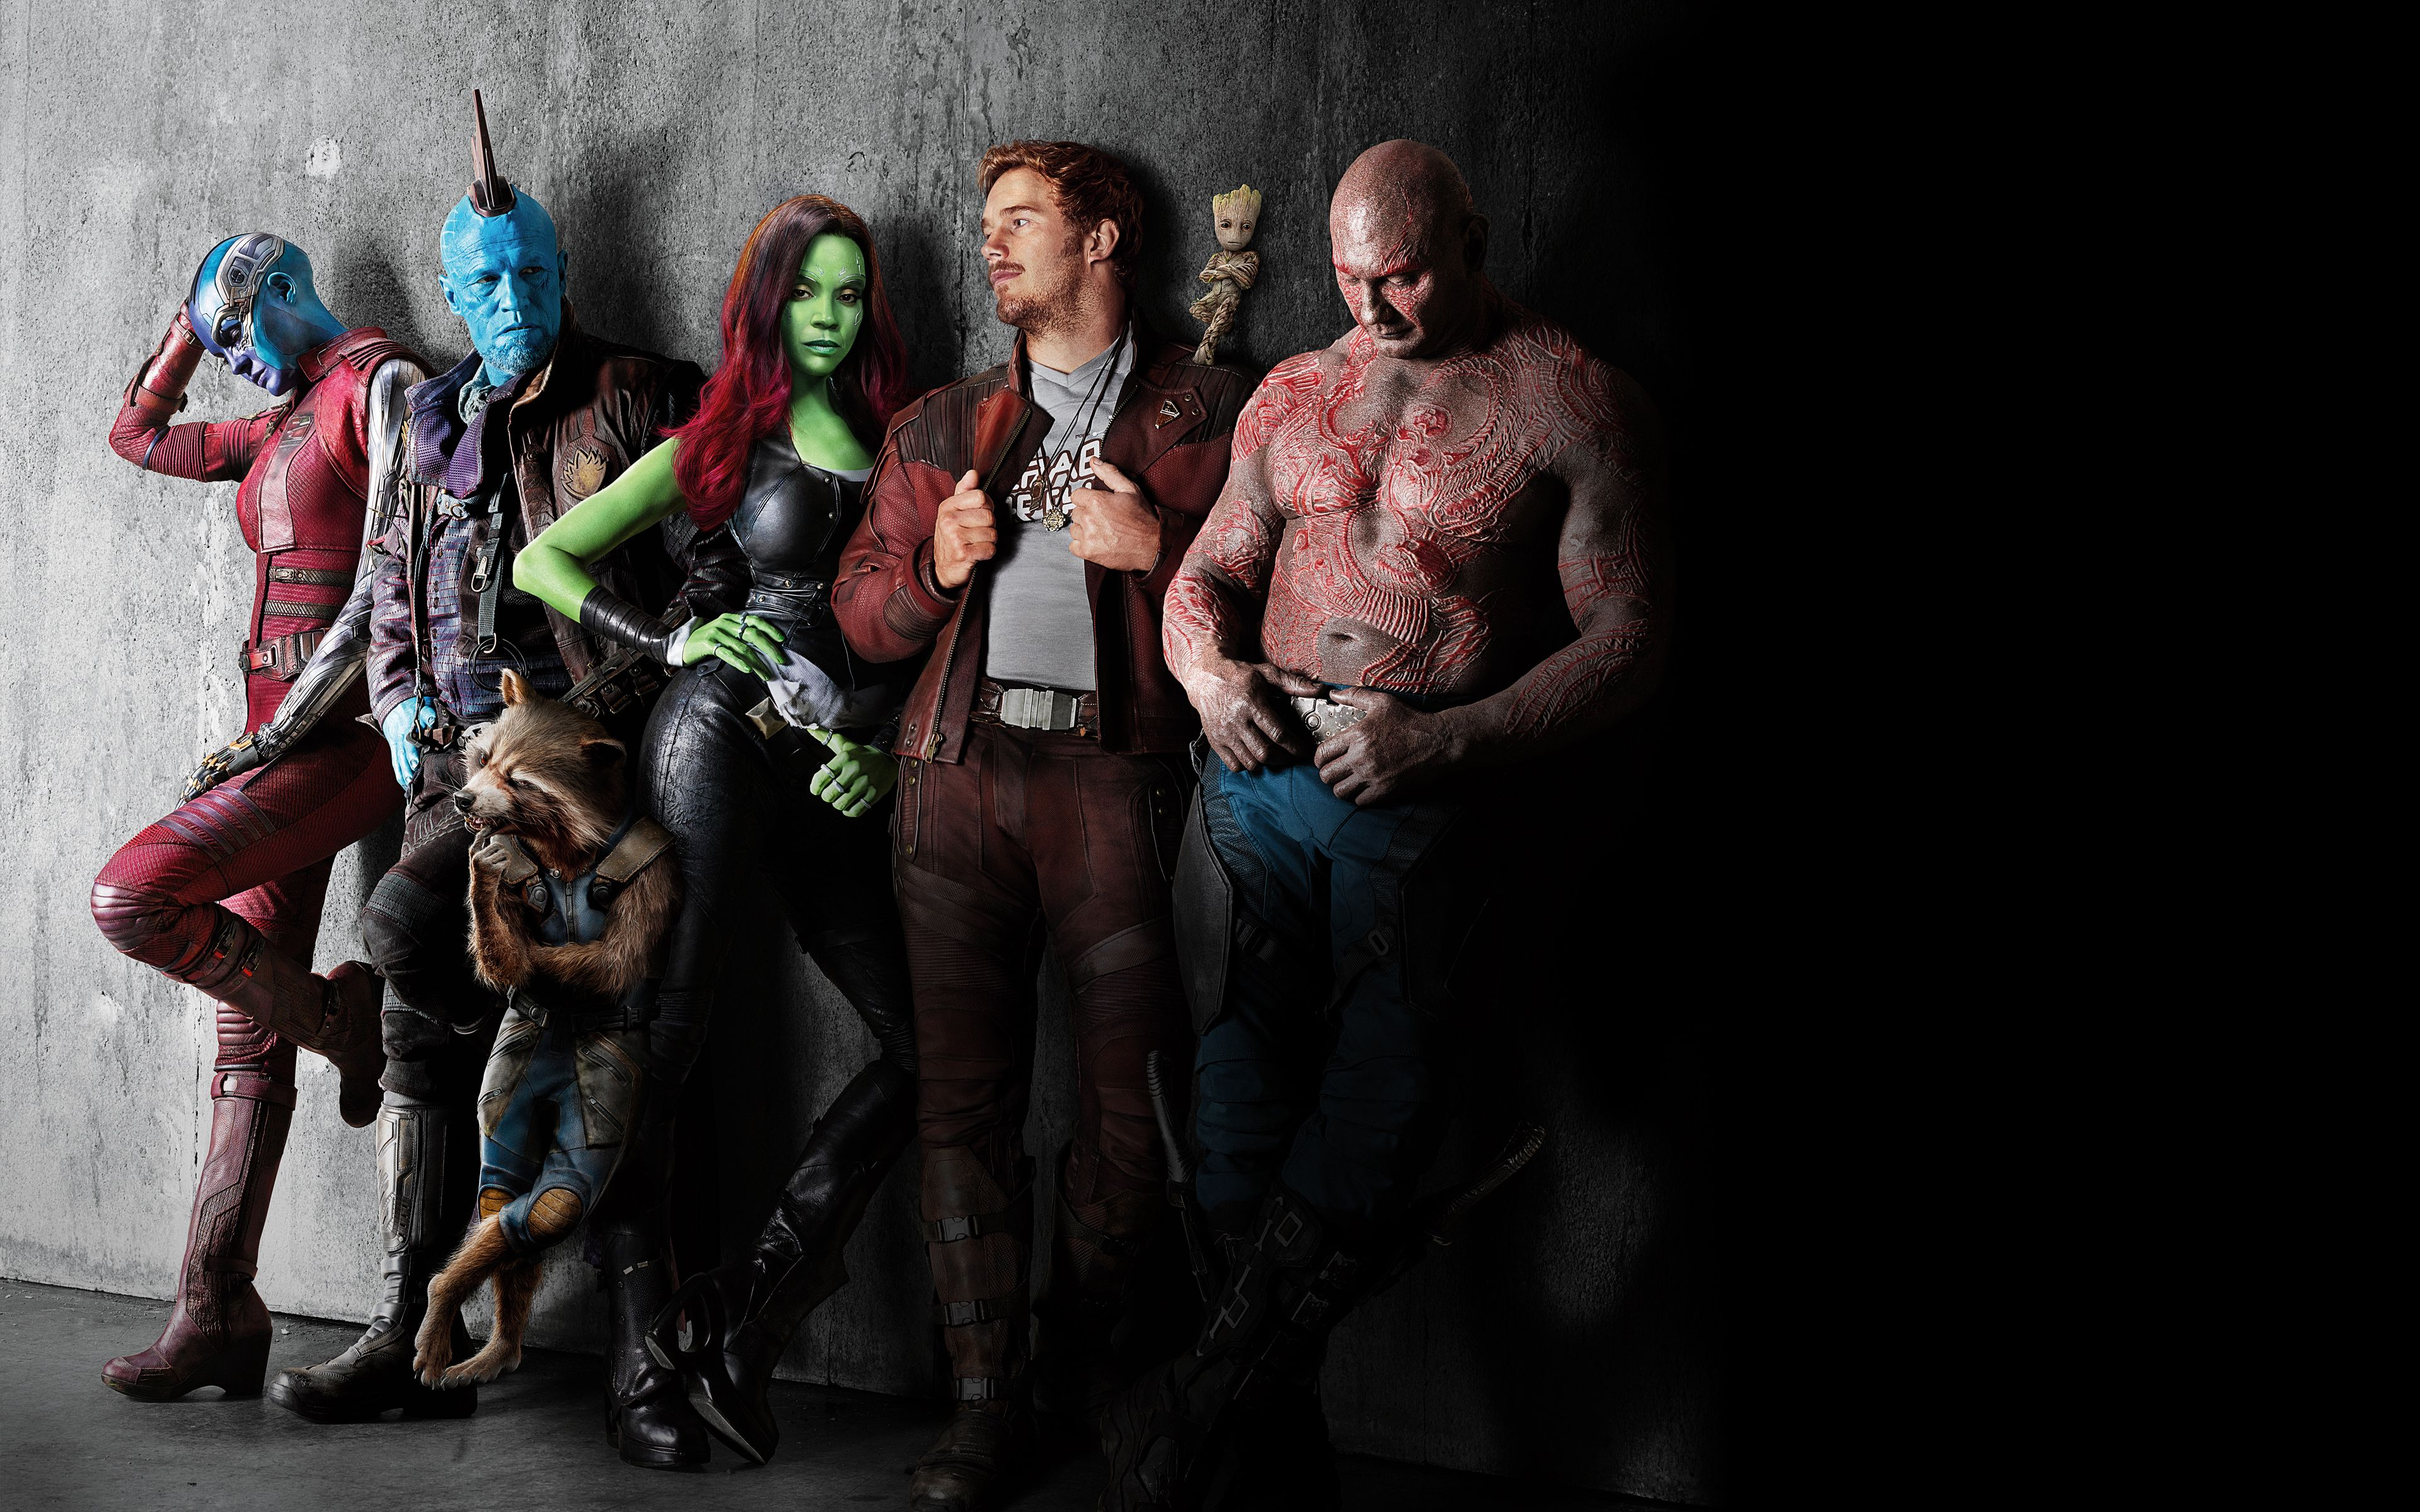 Guardians Of The Galaxy Vol 2 4k 8k 2017 Guardians Of The Galaxy Vol 2 Guardians Of The Galaxy Gaurdians Of The Galaxy